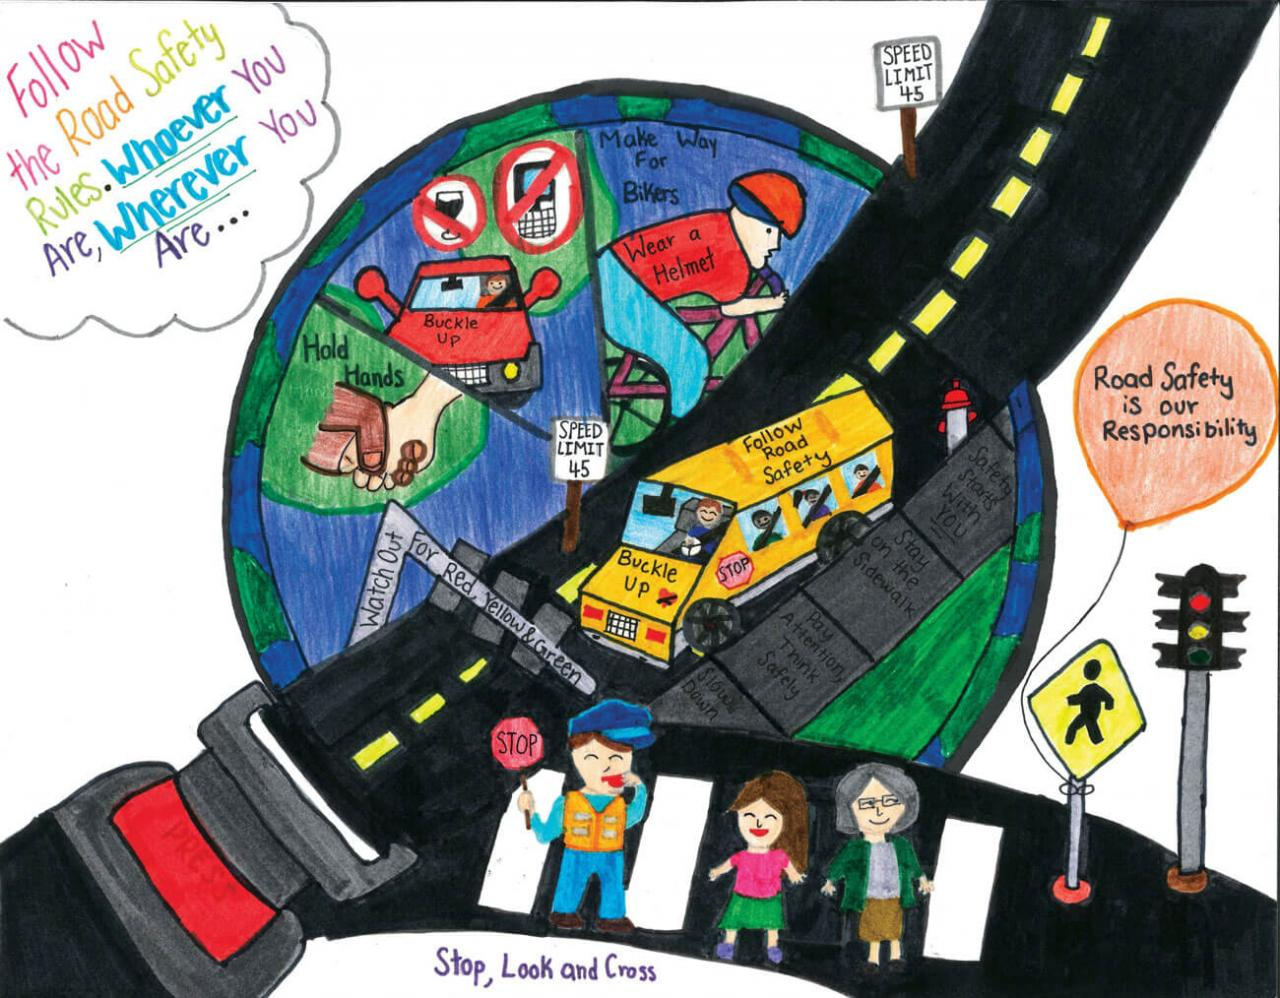 2019 road safety art contest winners